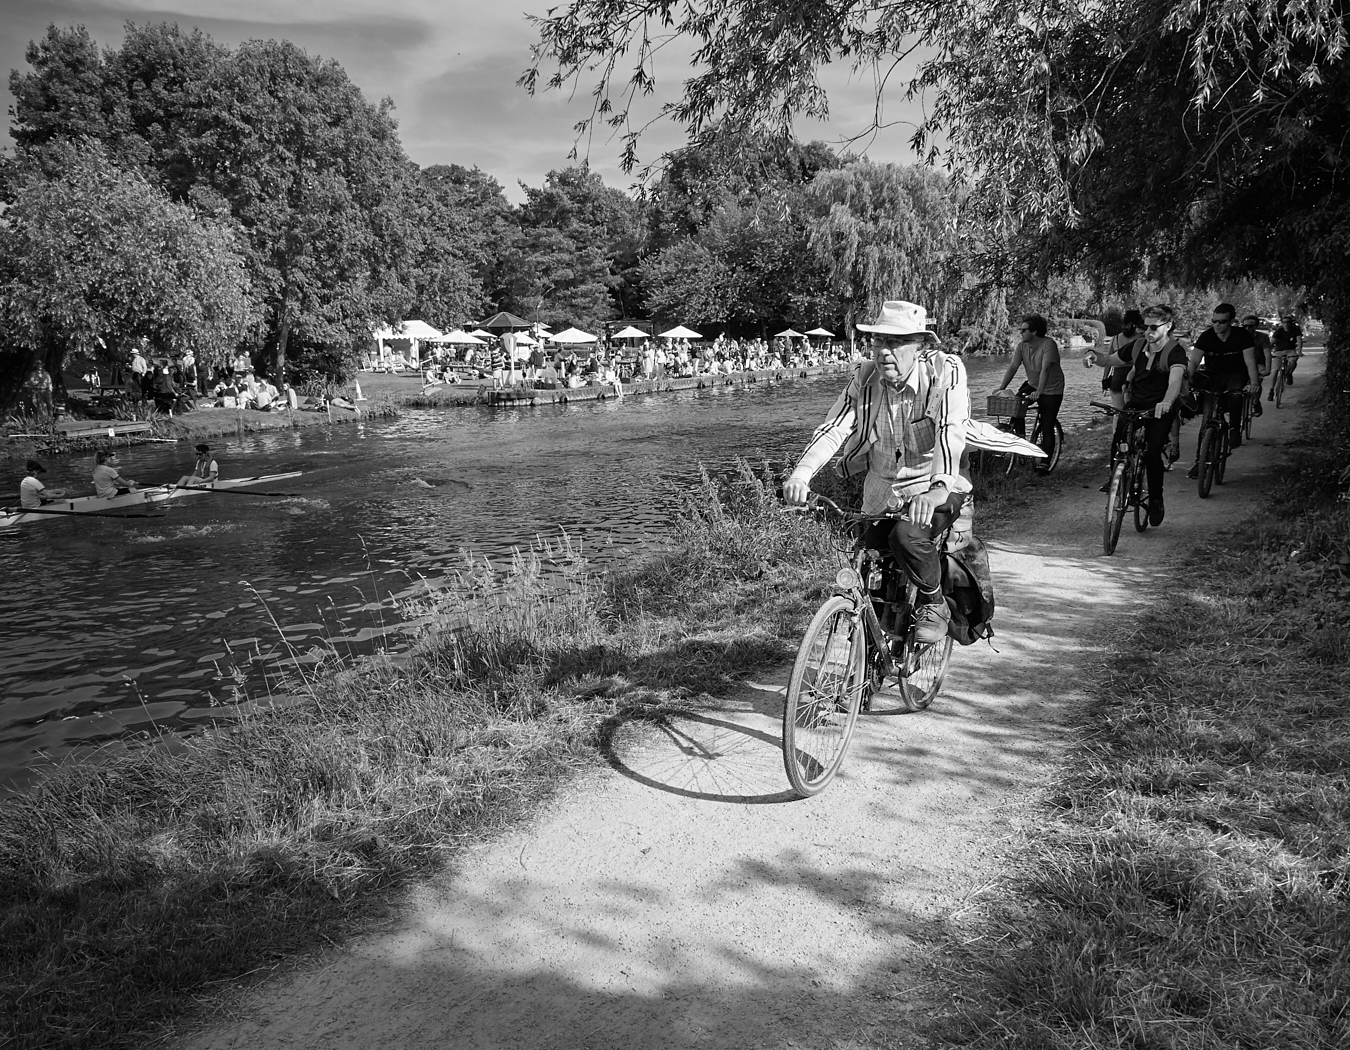 Old timer on the towpath1400x1050 sRGB.jpg